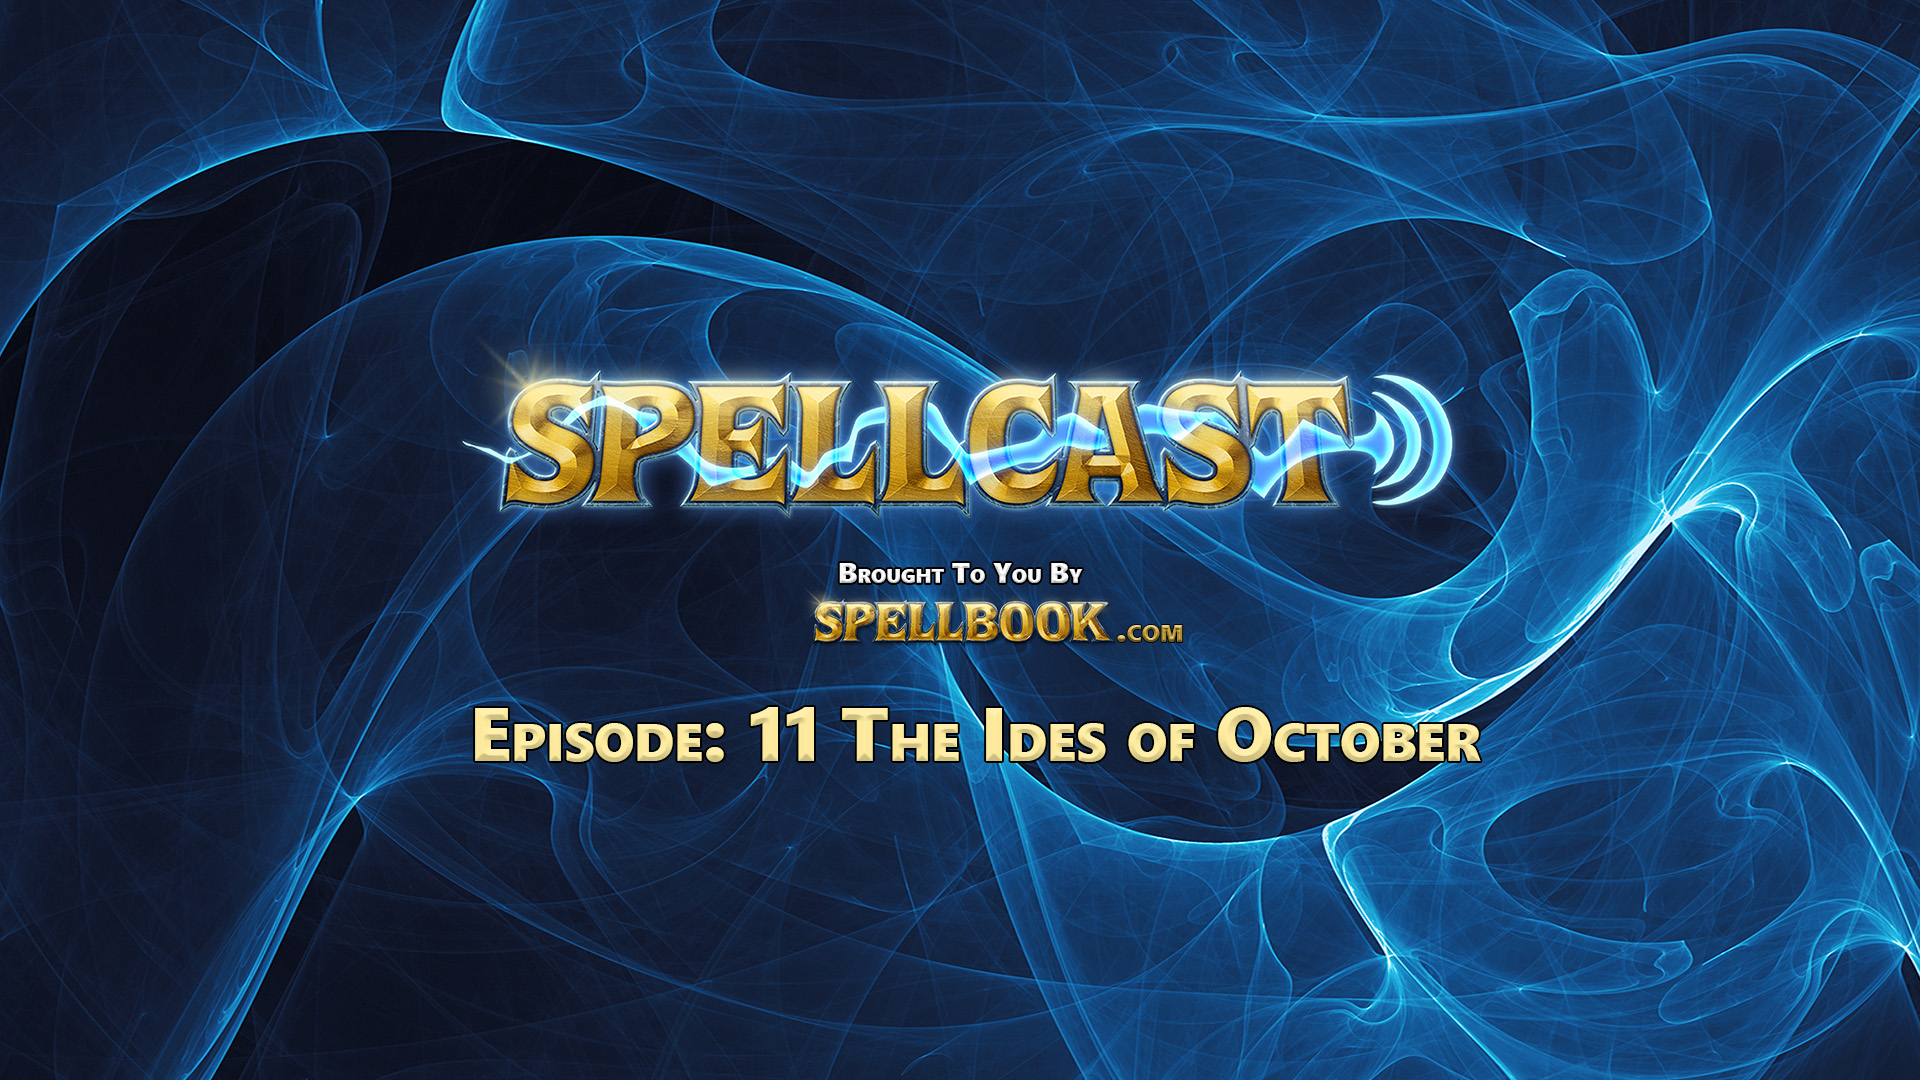 Spellcast Episode :11 - The Ides of October